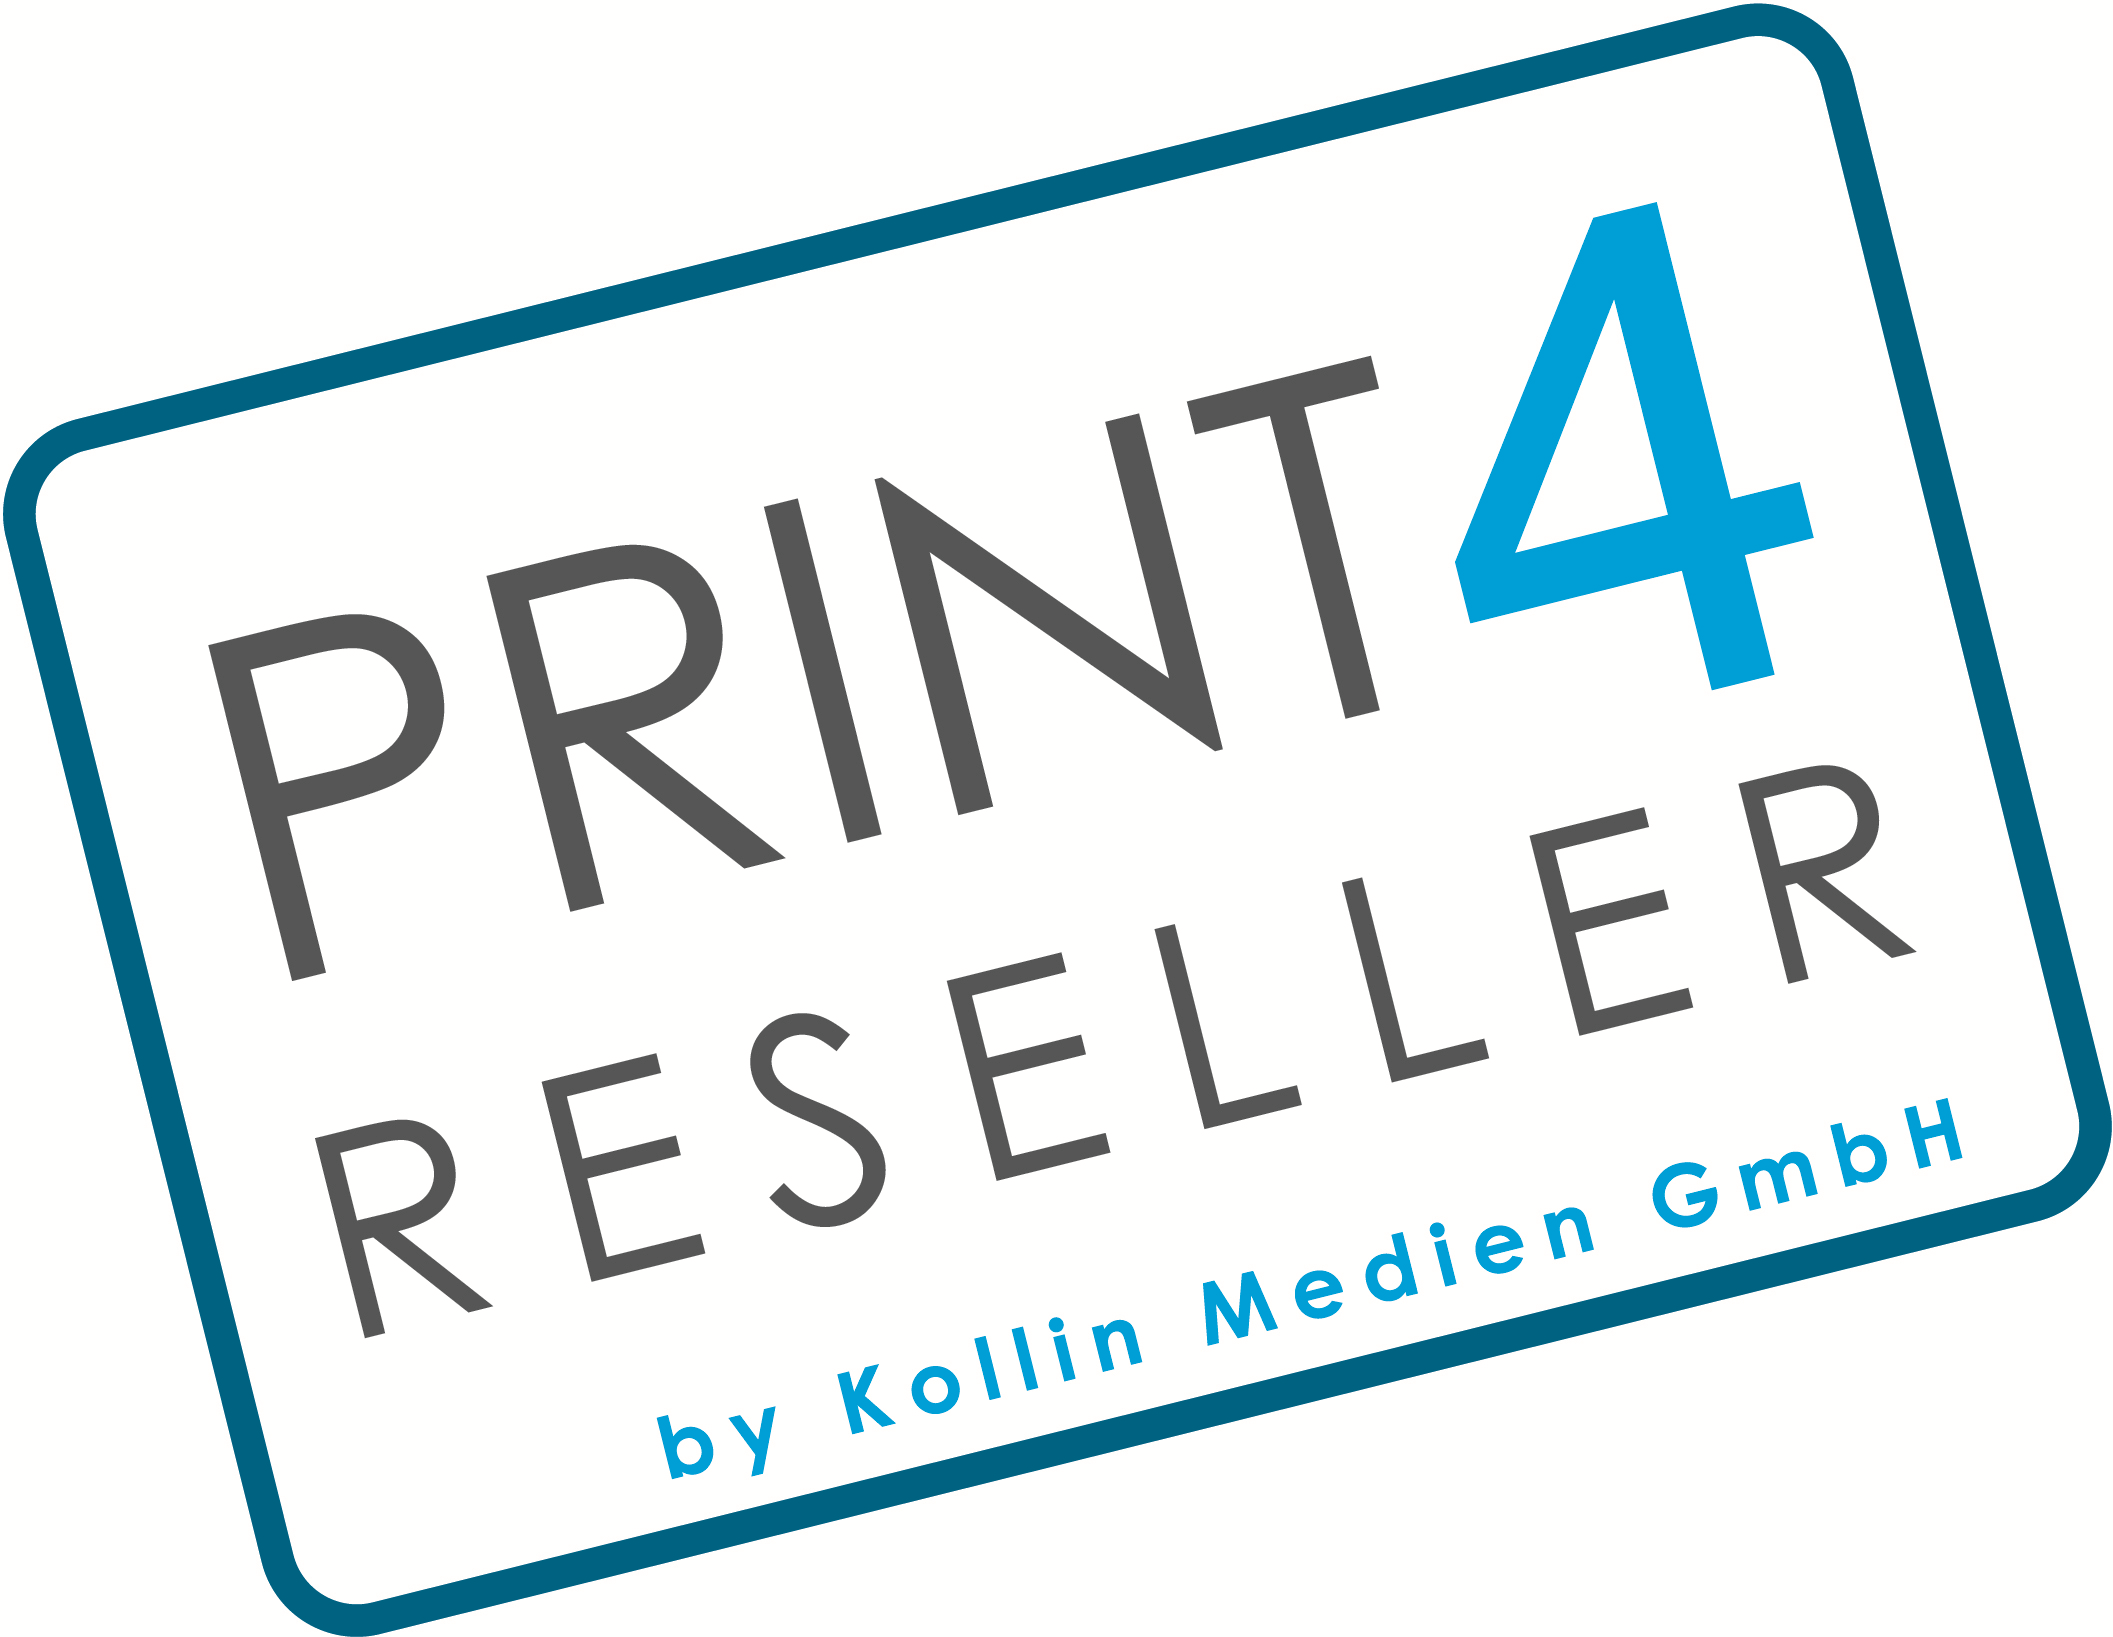 Print4reseller.com Software